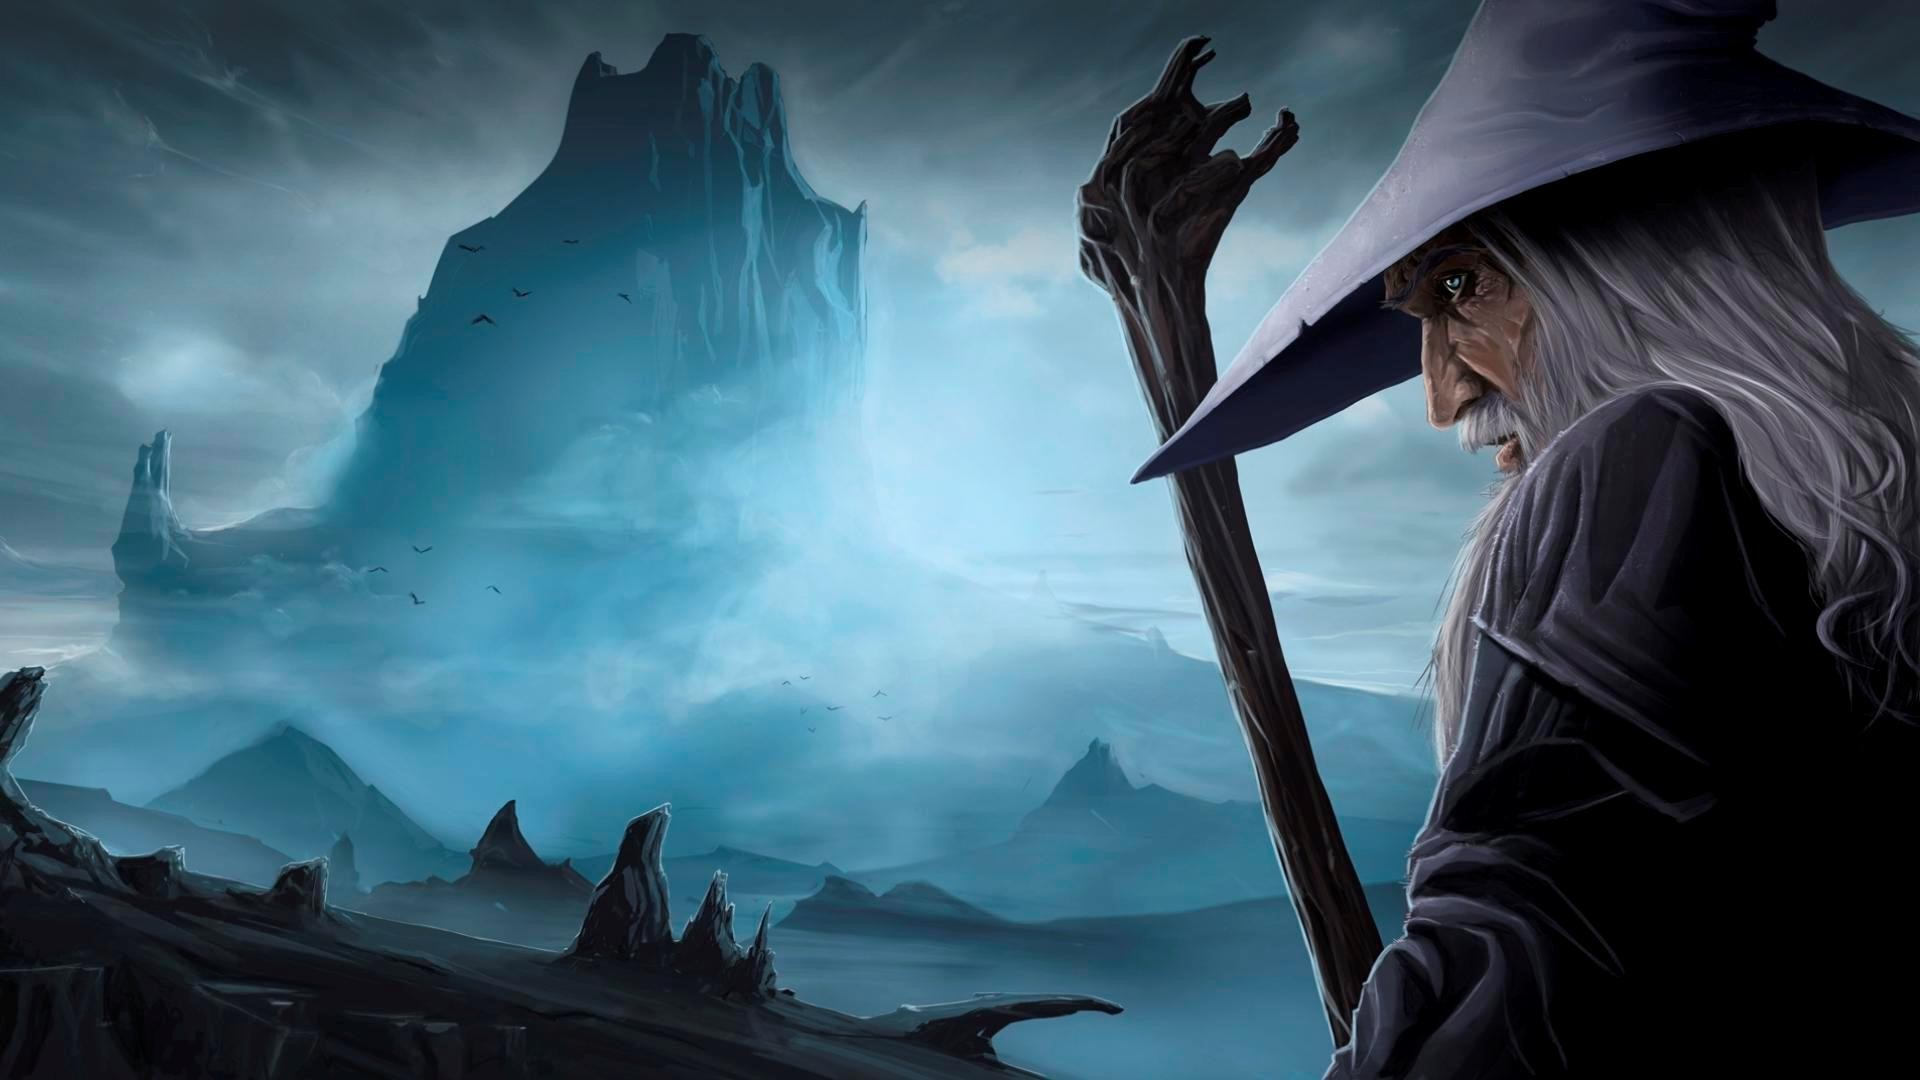 Gandalf   The Lord of the Rings wallpaper 18160 1920x1080